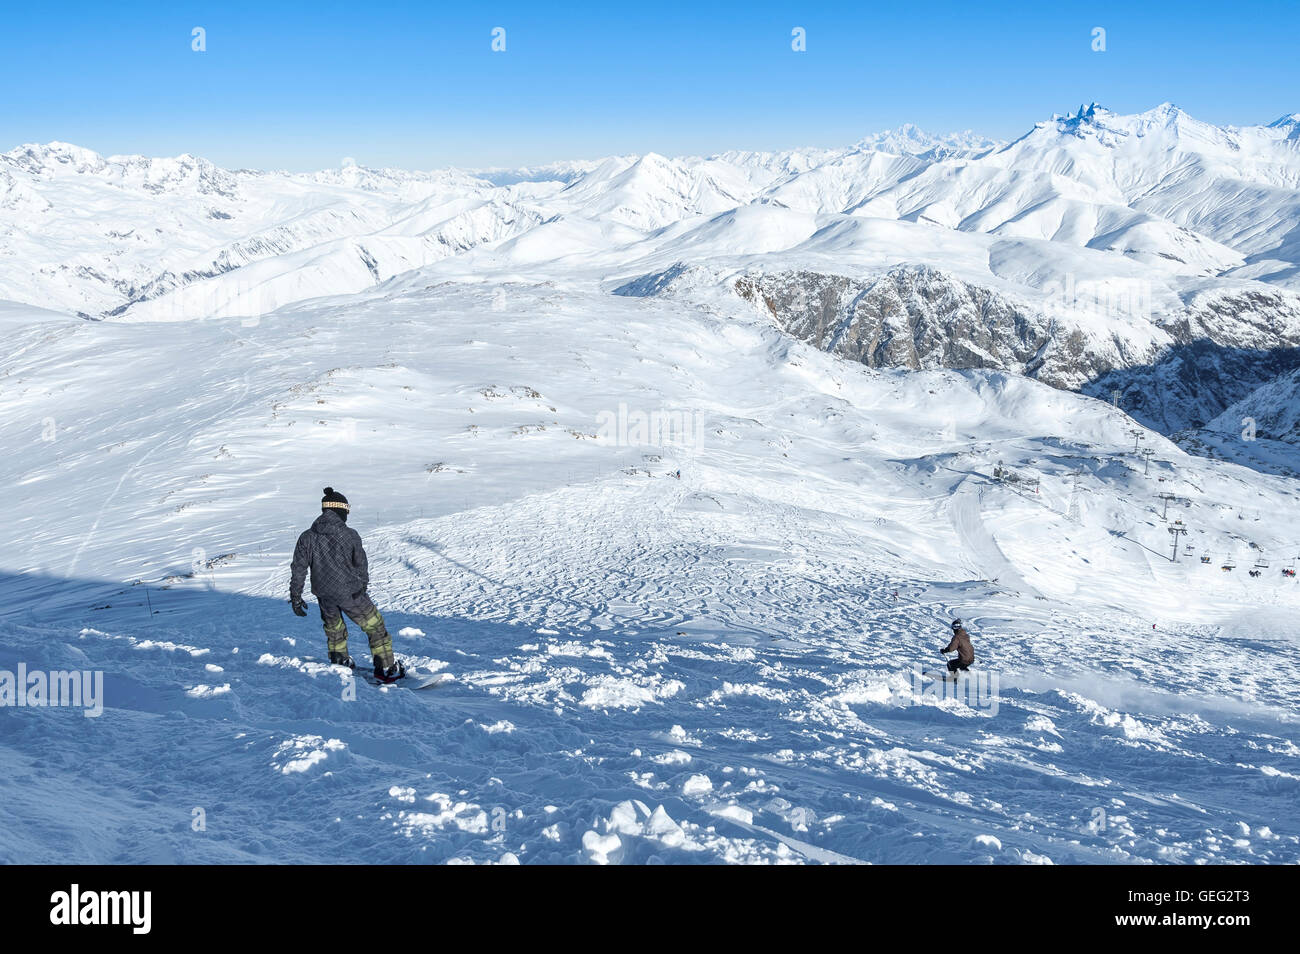 Snowboarders in the French Alps, France, Europe - Stock Image